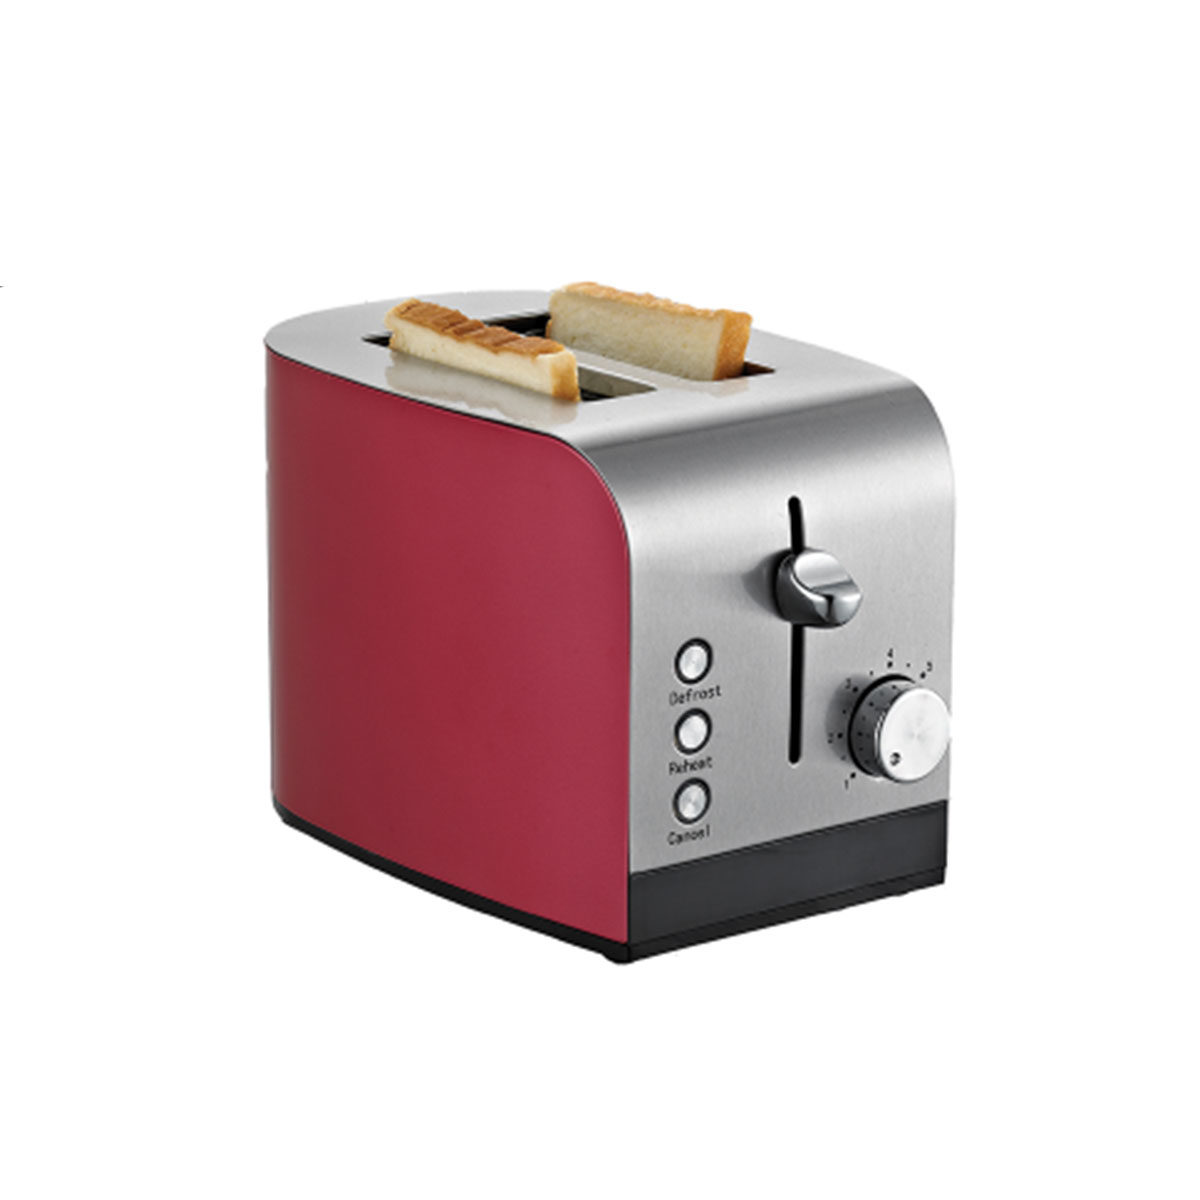 Red Stainless Steel Toaster